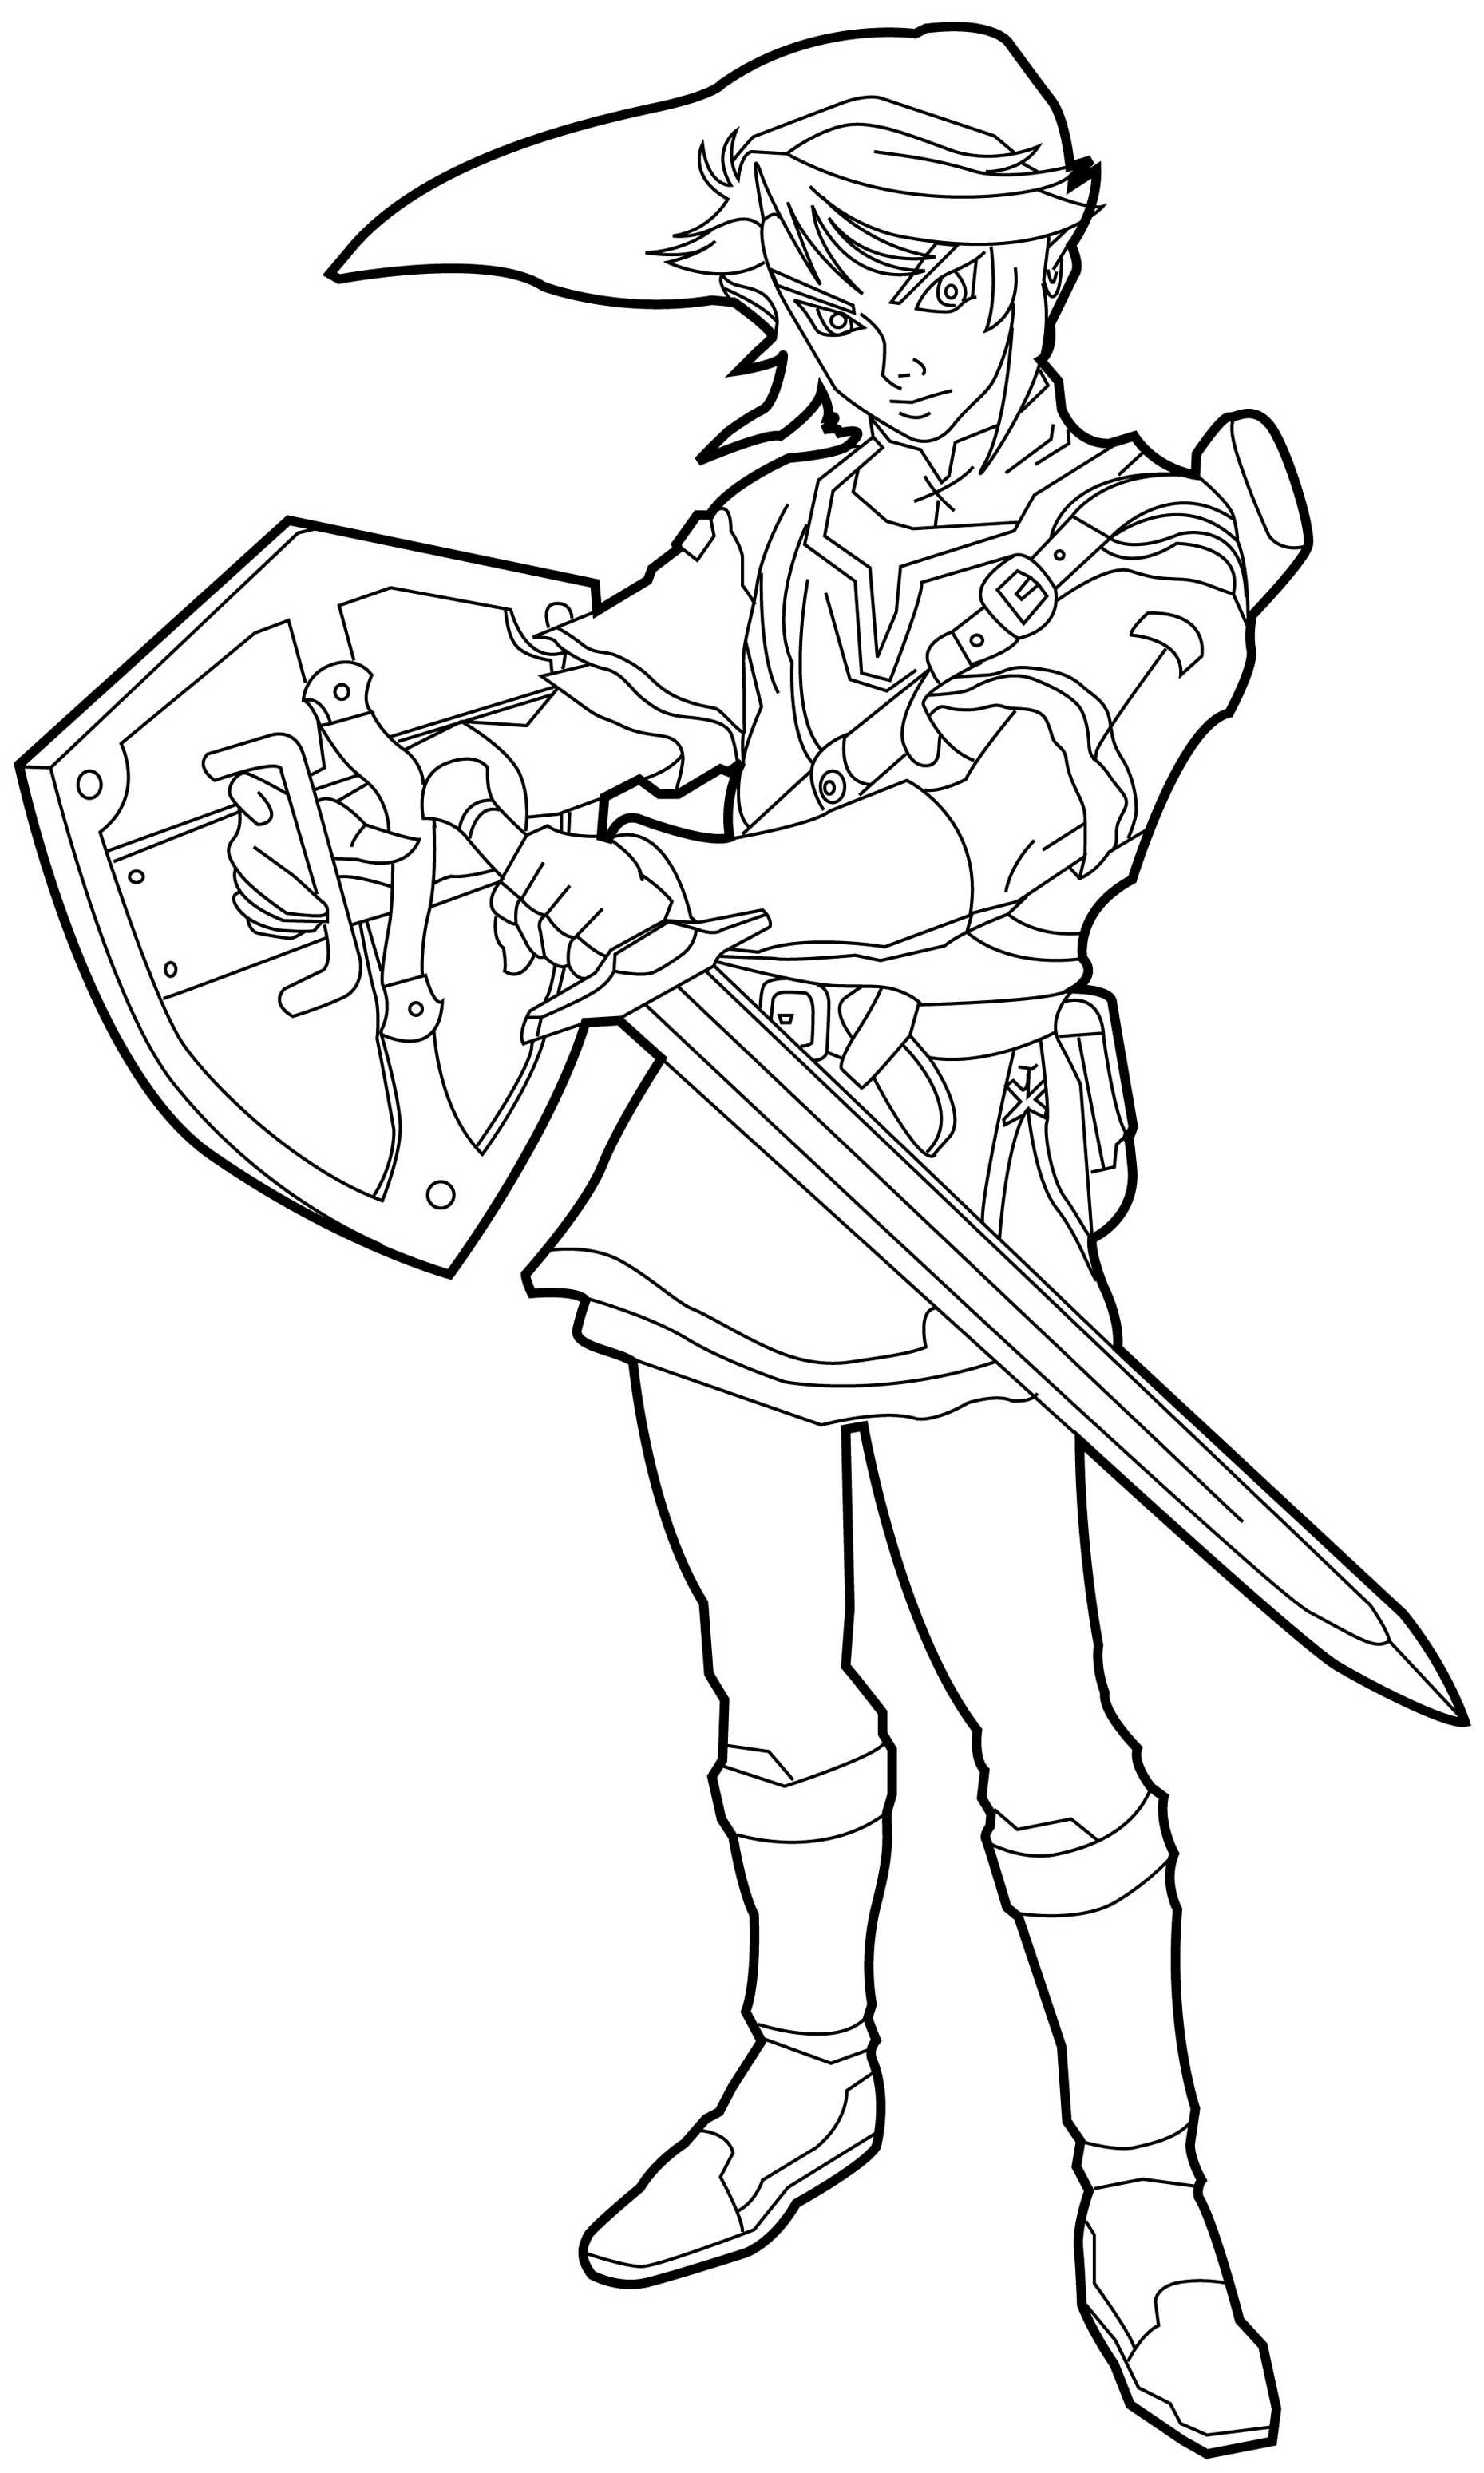 Free Zelda Coloring Pages Coloring Pages For Kids Coloring